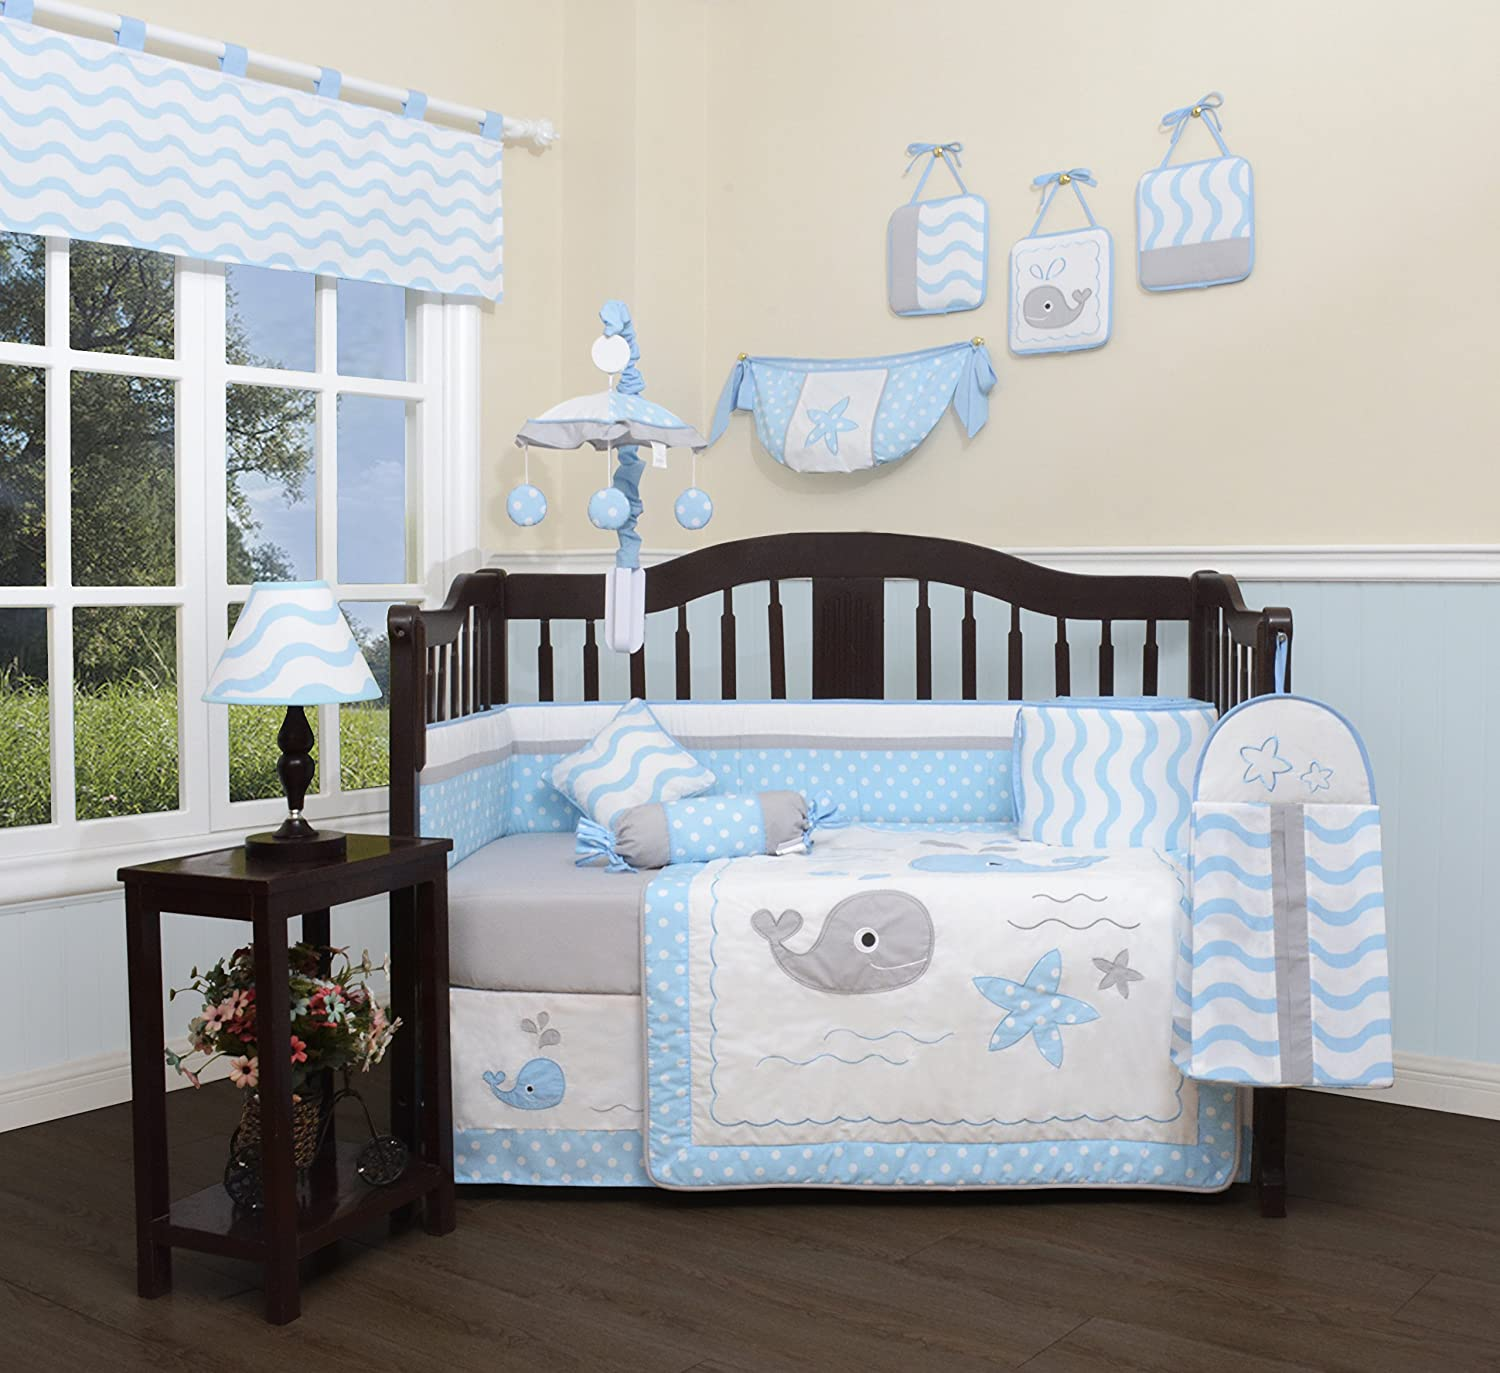 GEENNY Baby Lovely Whale 13 Piece Nursery Crib Bedding Set CRIB-CF-2089